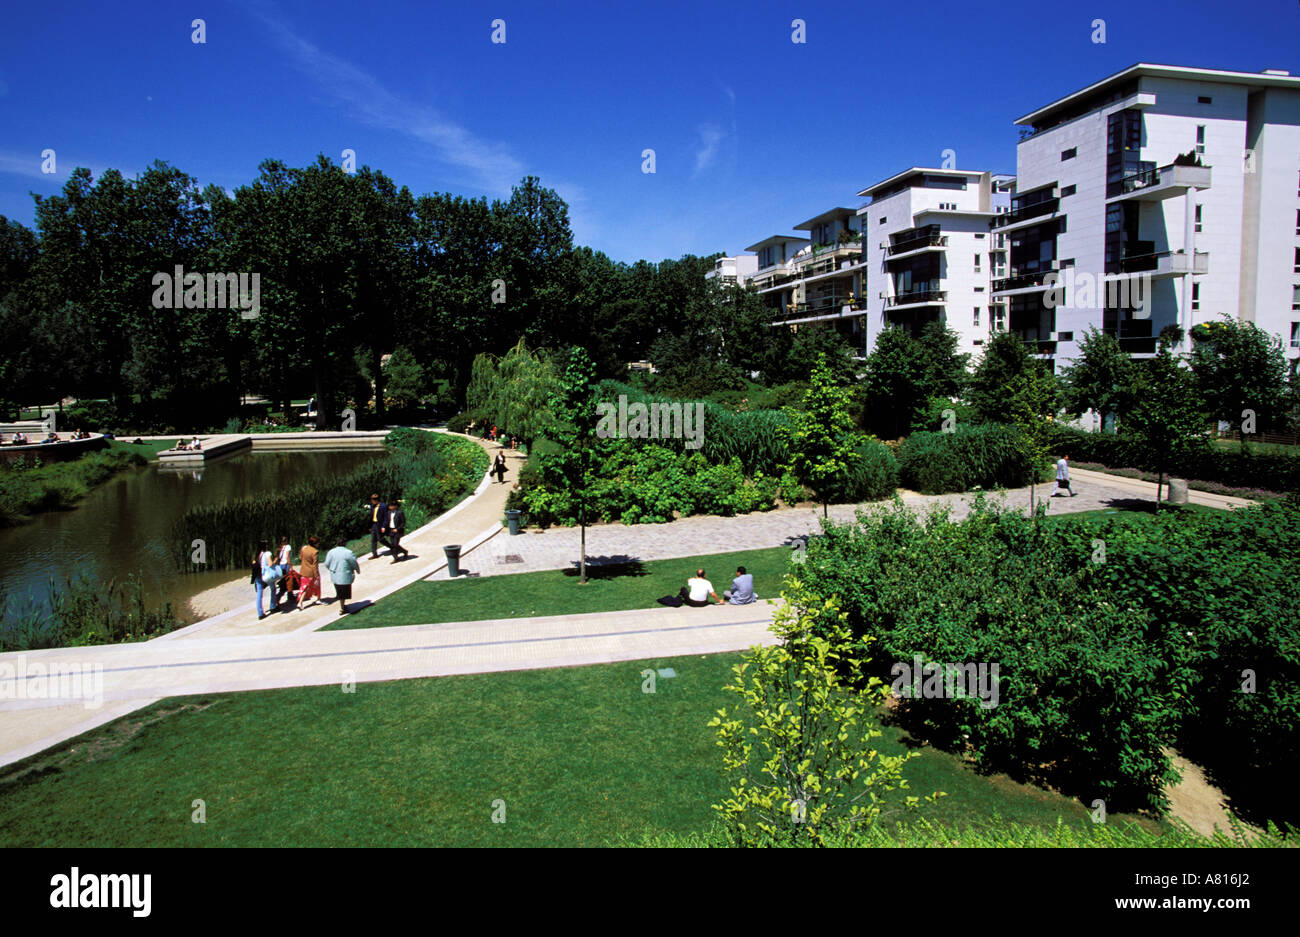 France, Paris, new districts, Bercy, Bercy park - Stock Image